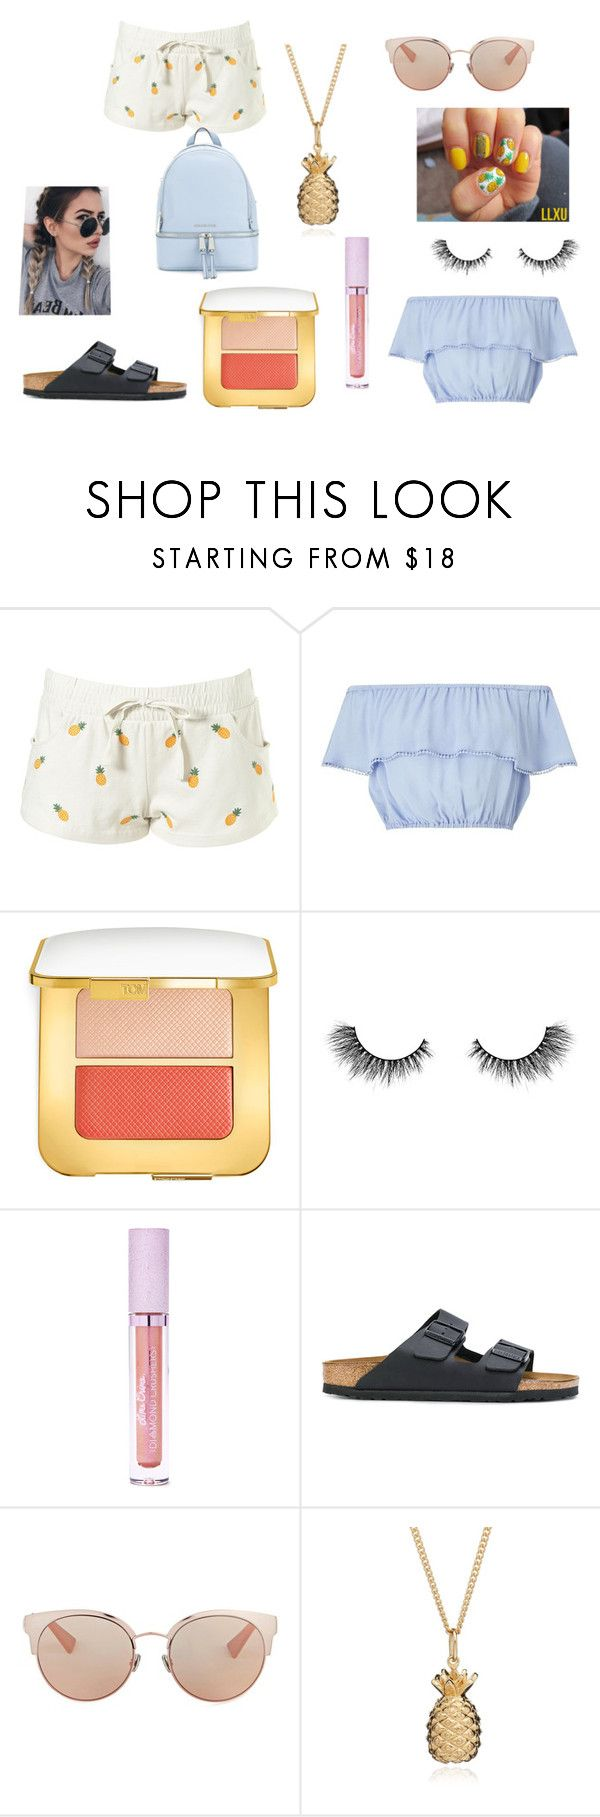 """""""summer wishes"""" by graciea1289 ❤ liked on Polyvore featuring Miss Selfridge, Tom Ford, Artémes, Lime Crime, Birkenstock, Christian Dior, Rachel Jackson and MICHAEL Michael Kors"""